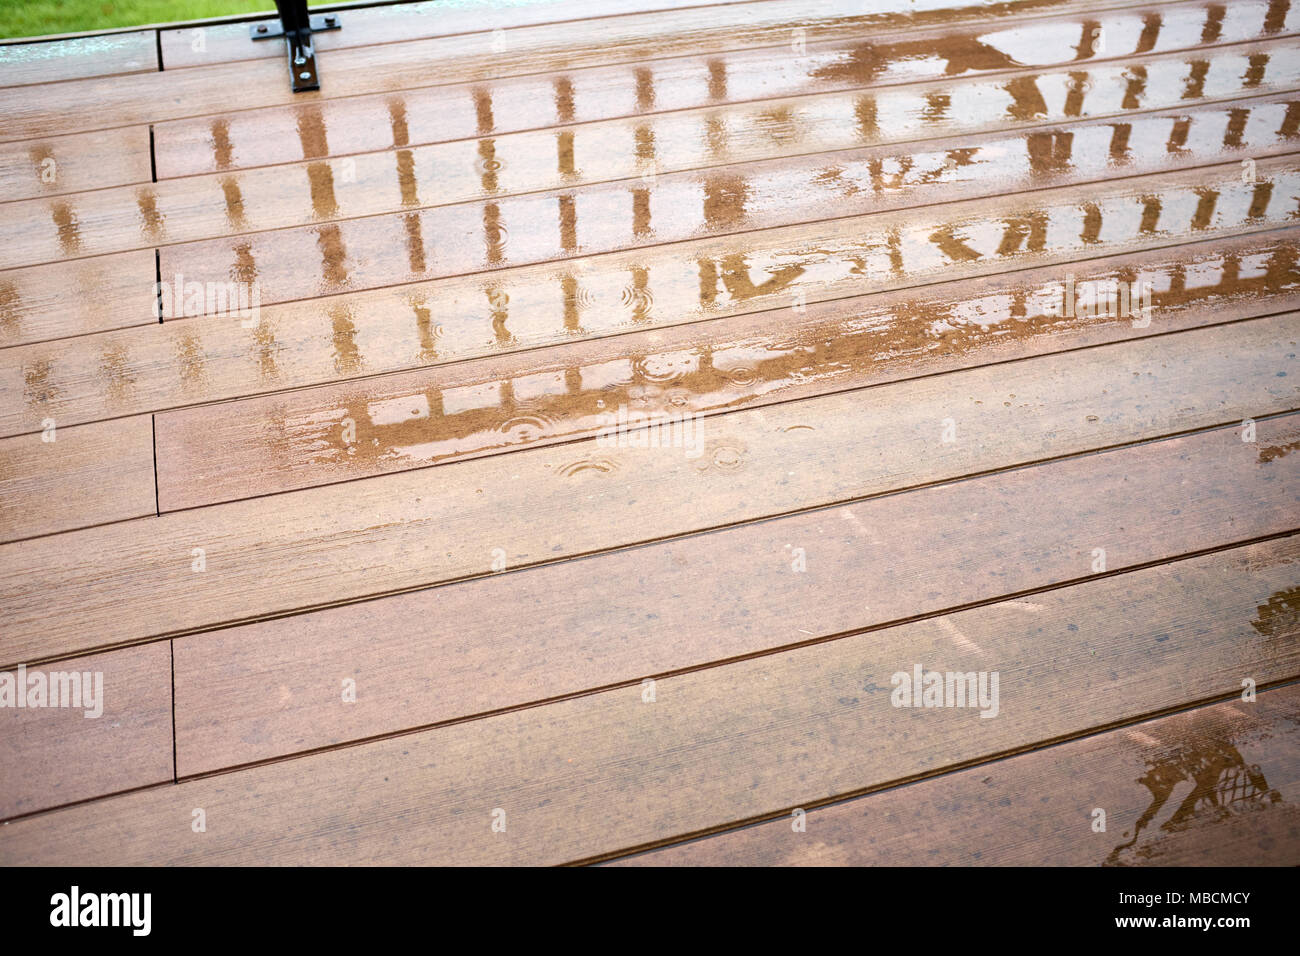 Wet slippery surface of wooden platform after rain - Stock Image